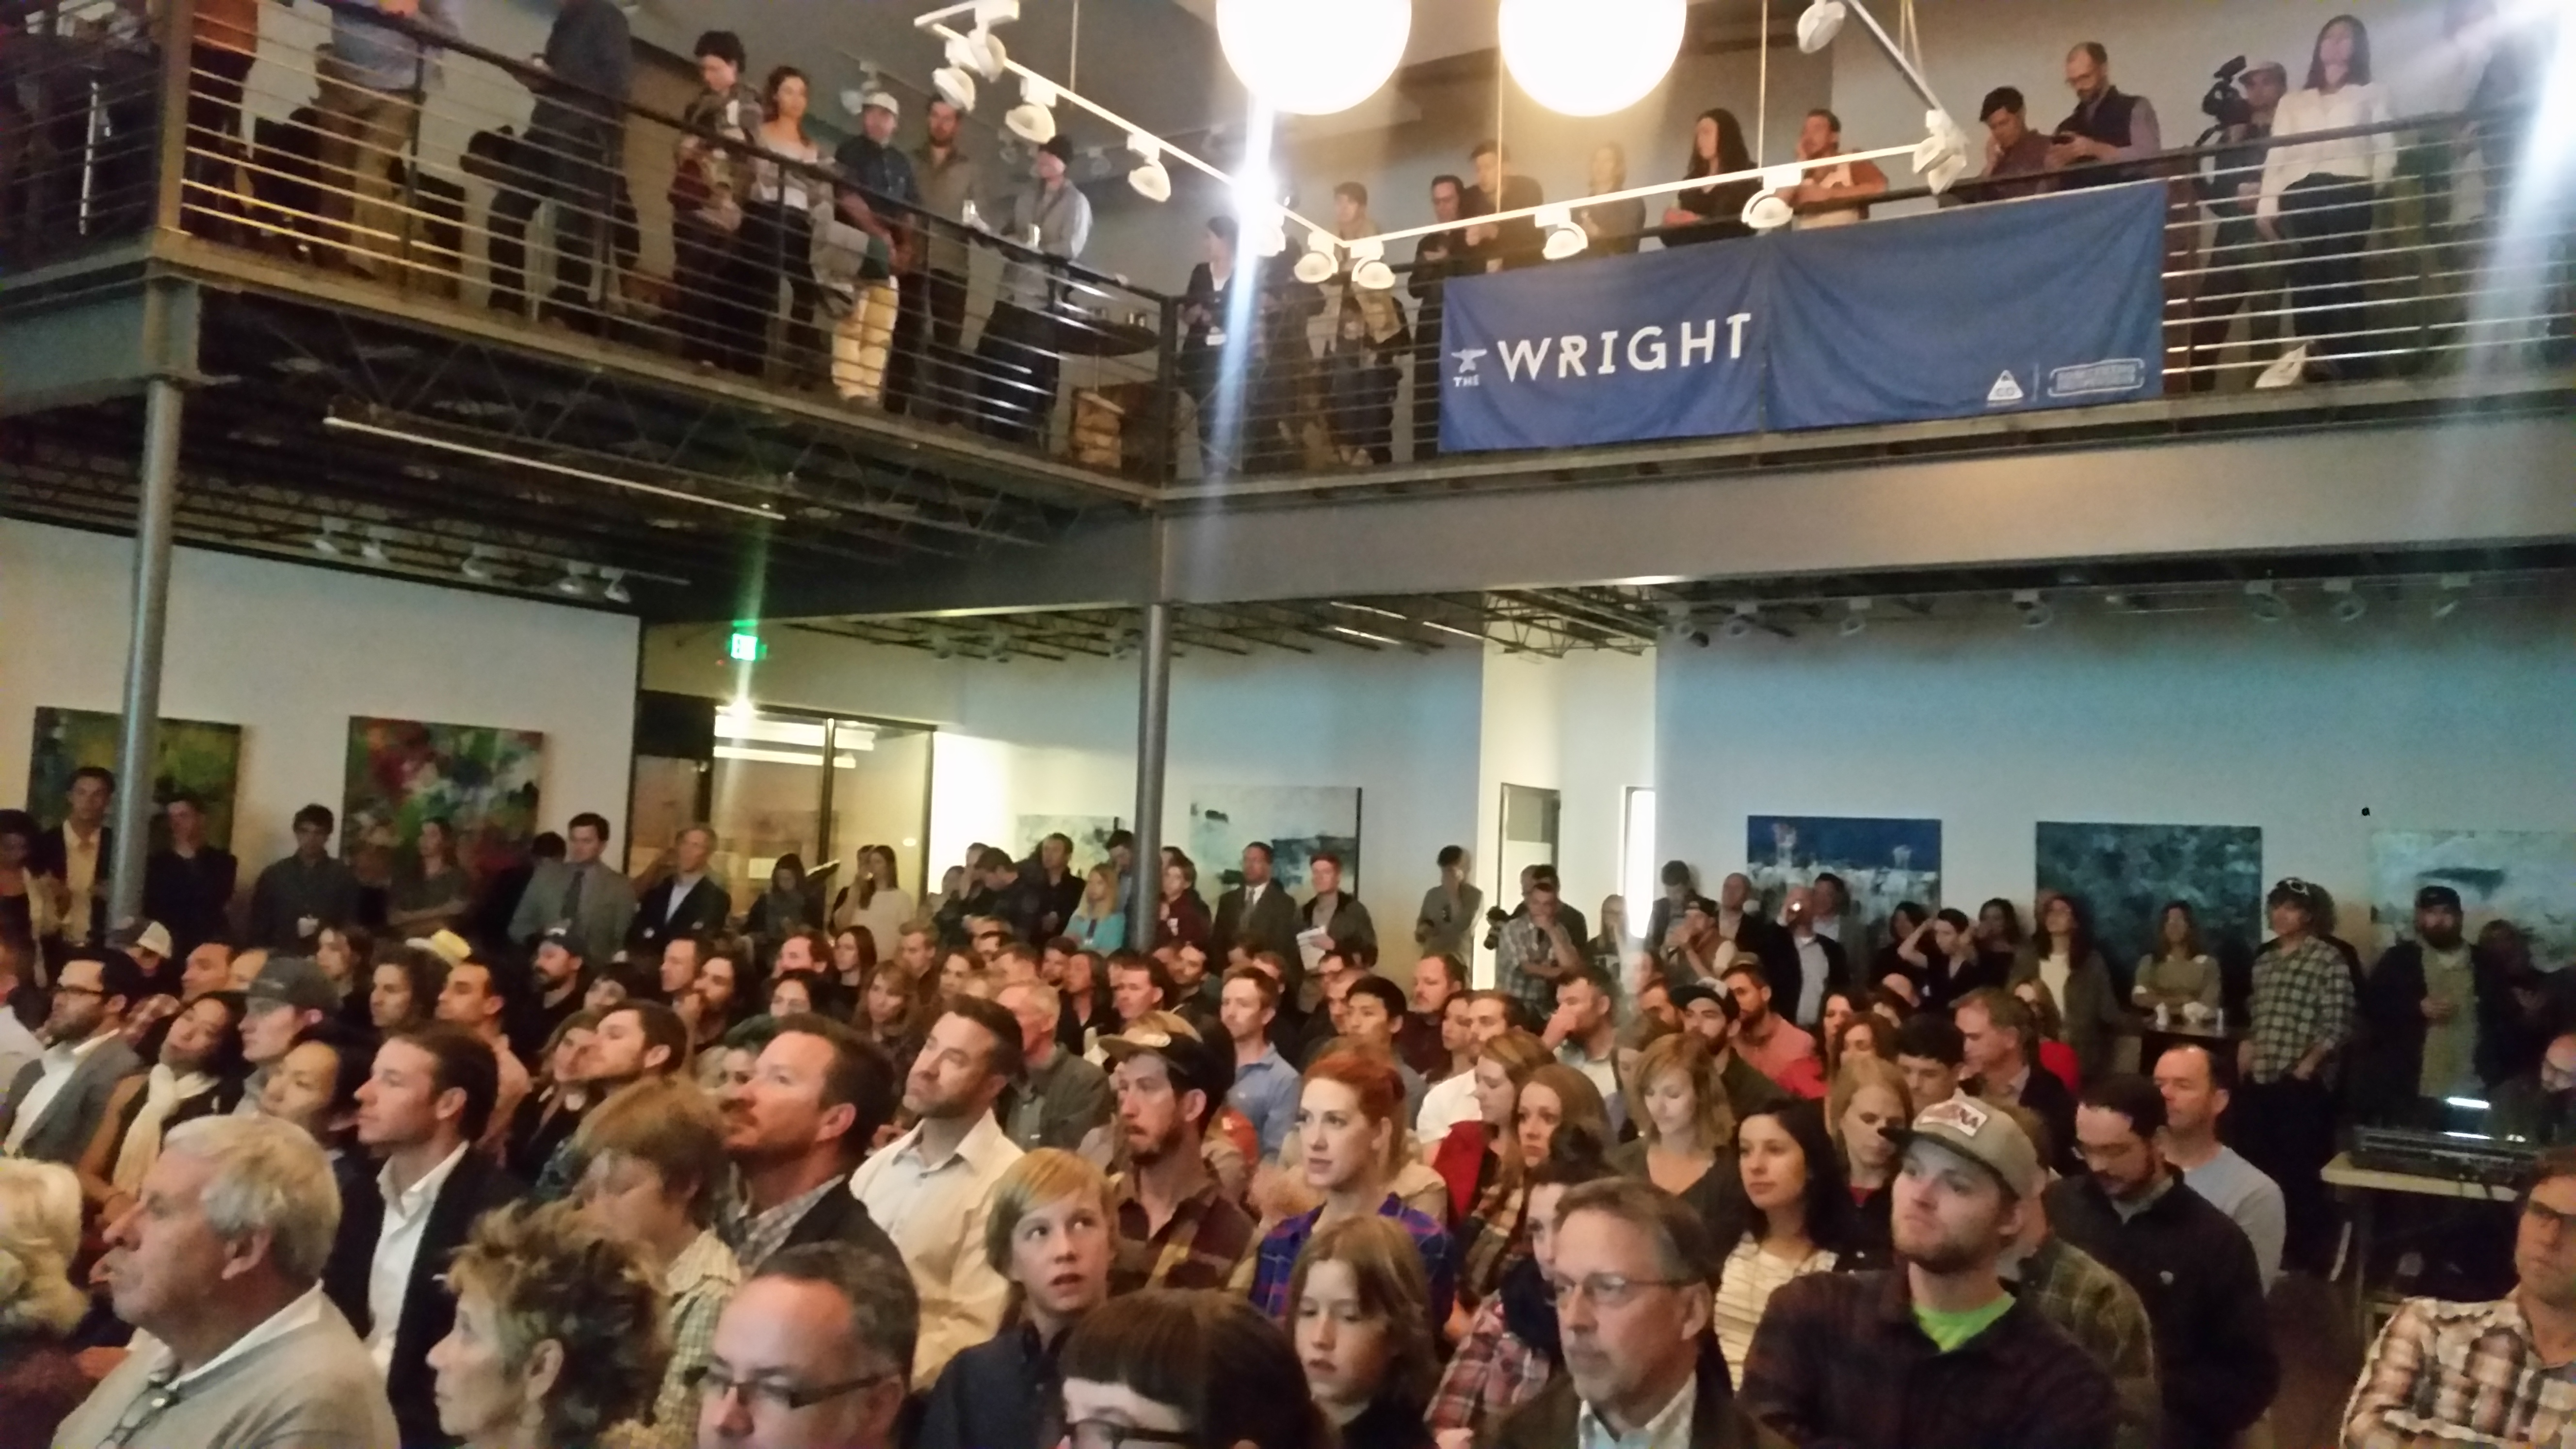 The Wright Audience